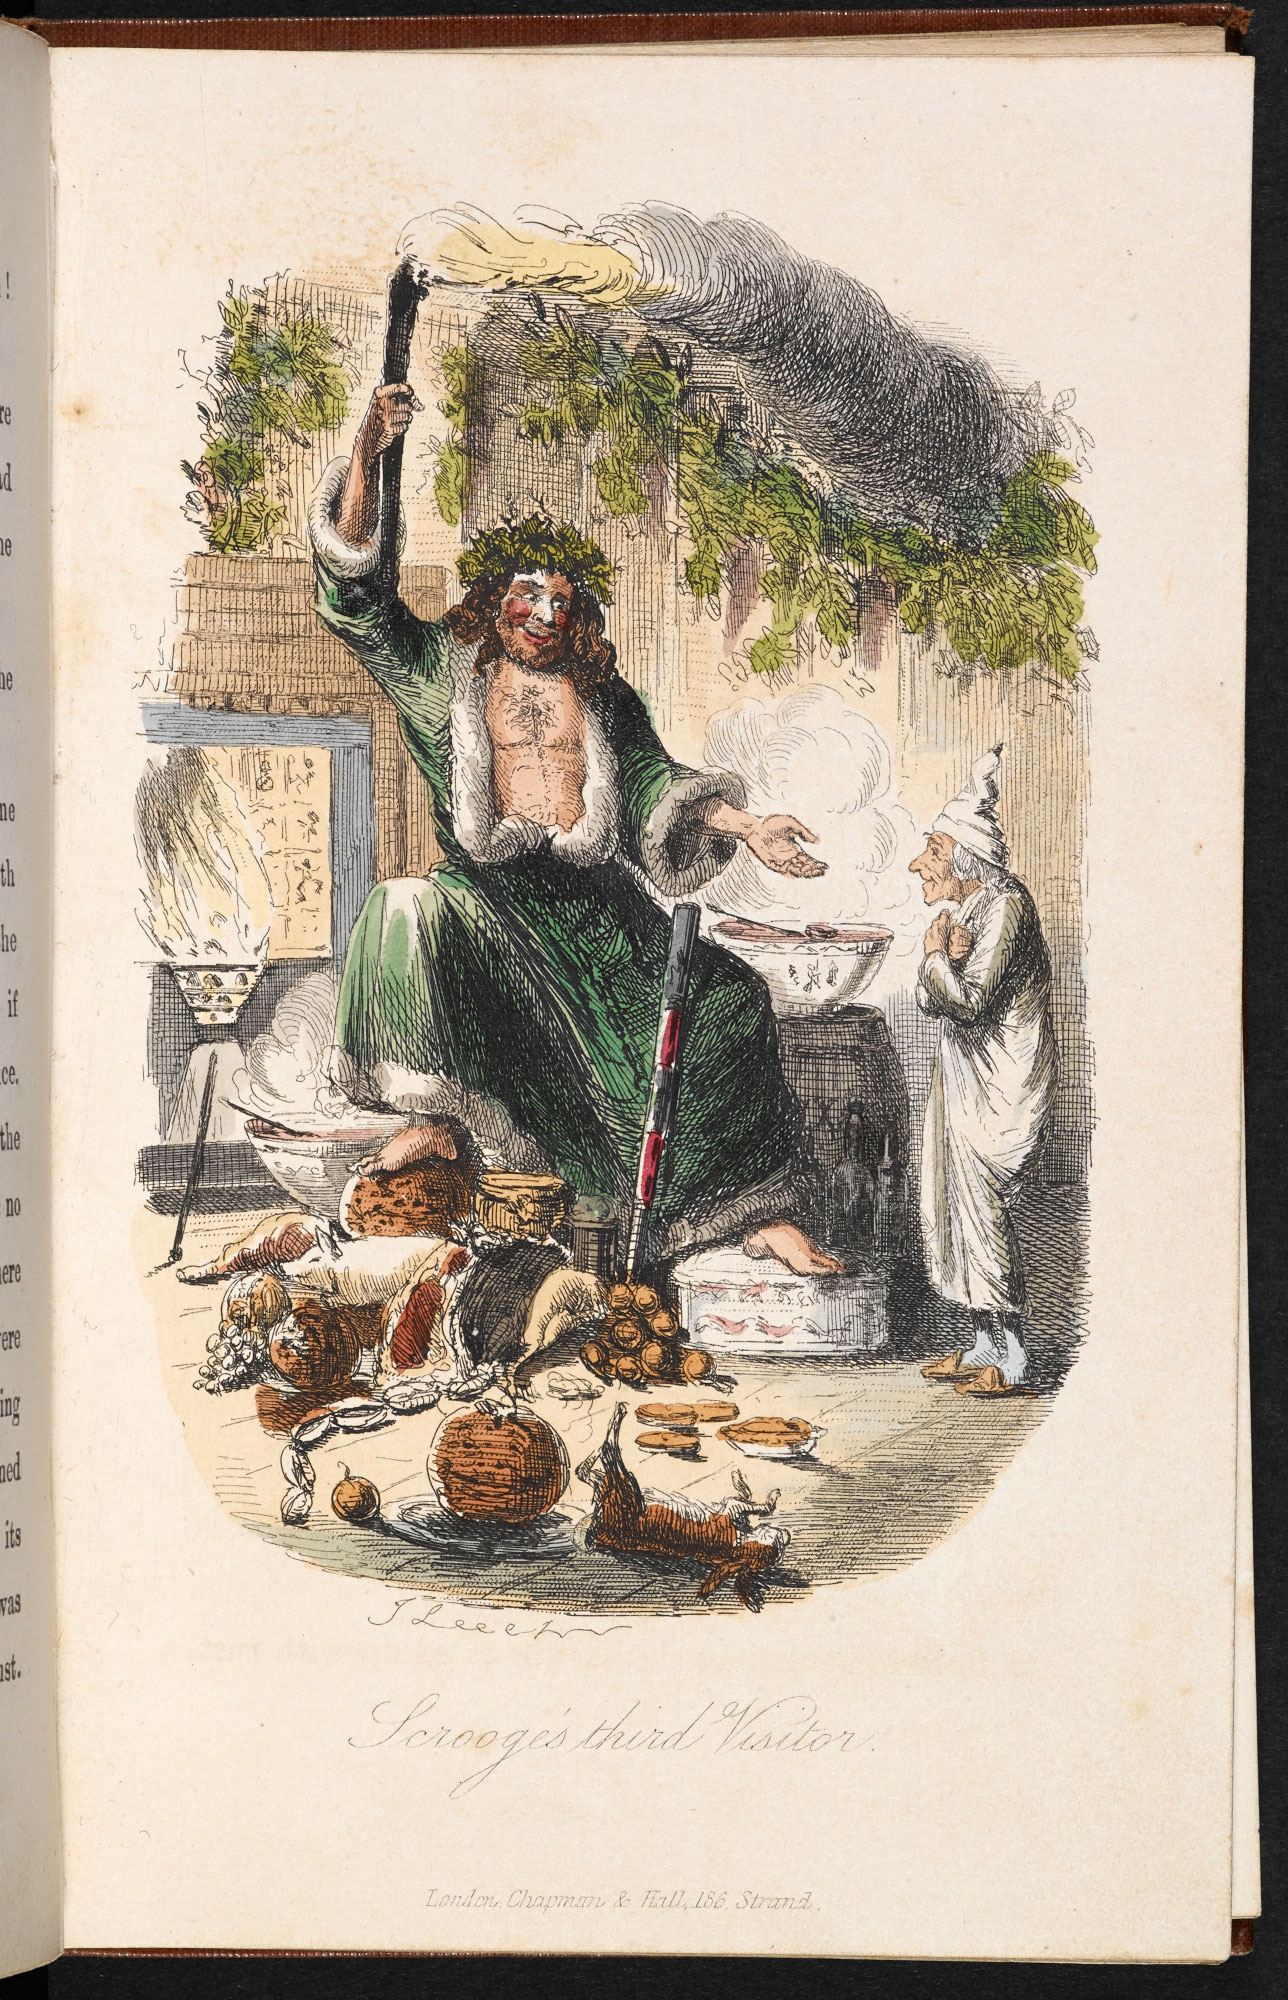 The origins of A Christmas Carol - The British Library